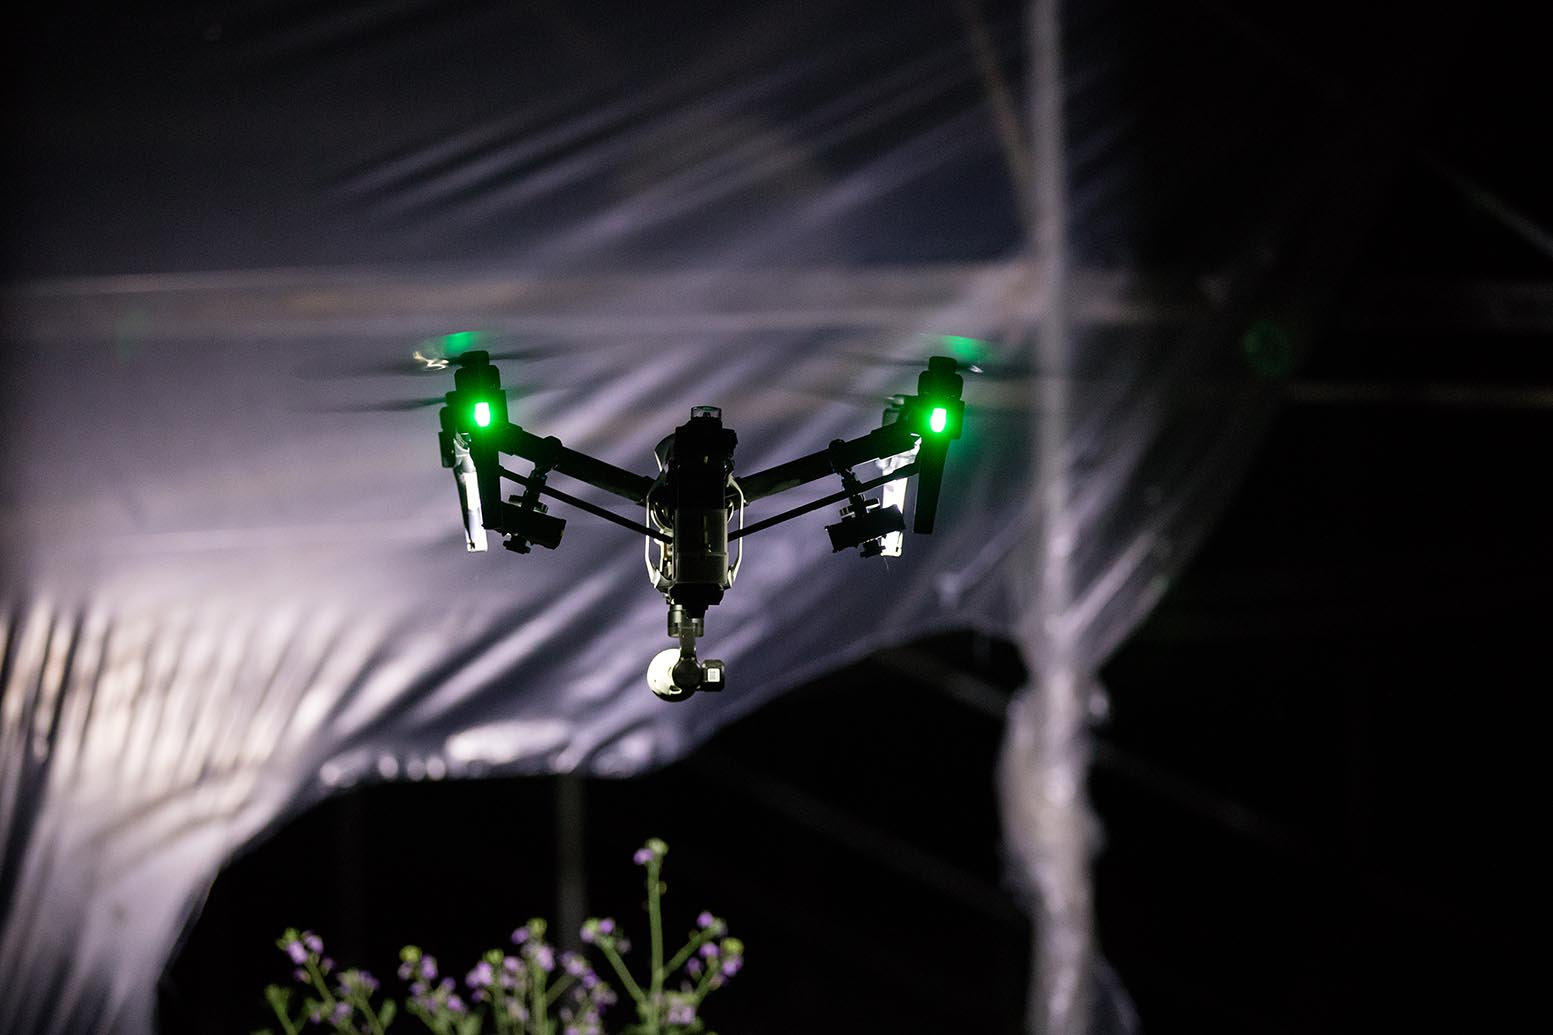 Drone equipped wit 2 FoxFury Rugo R1S to inspect weather damaged building